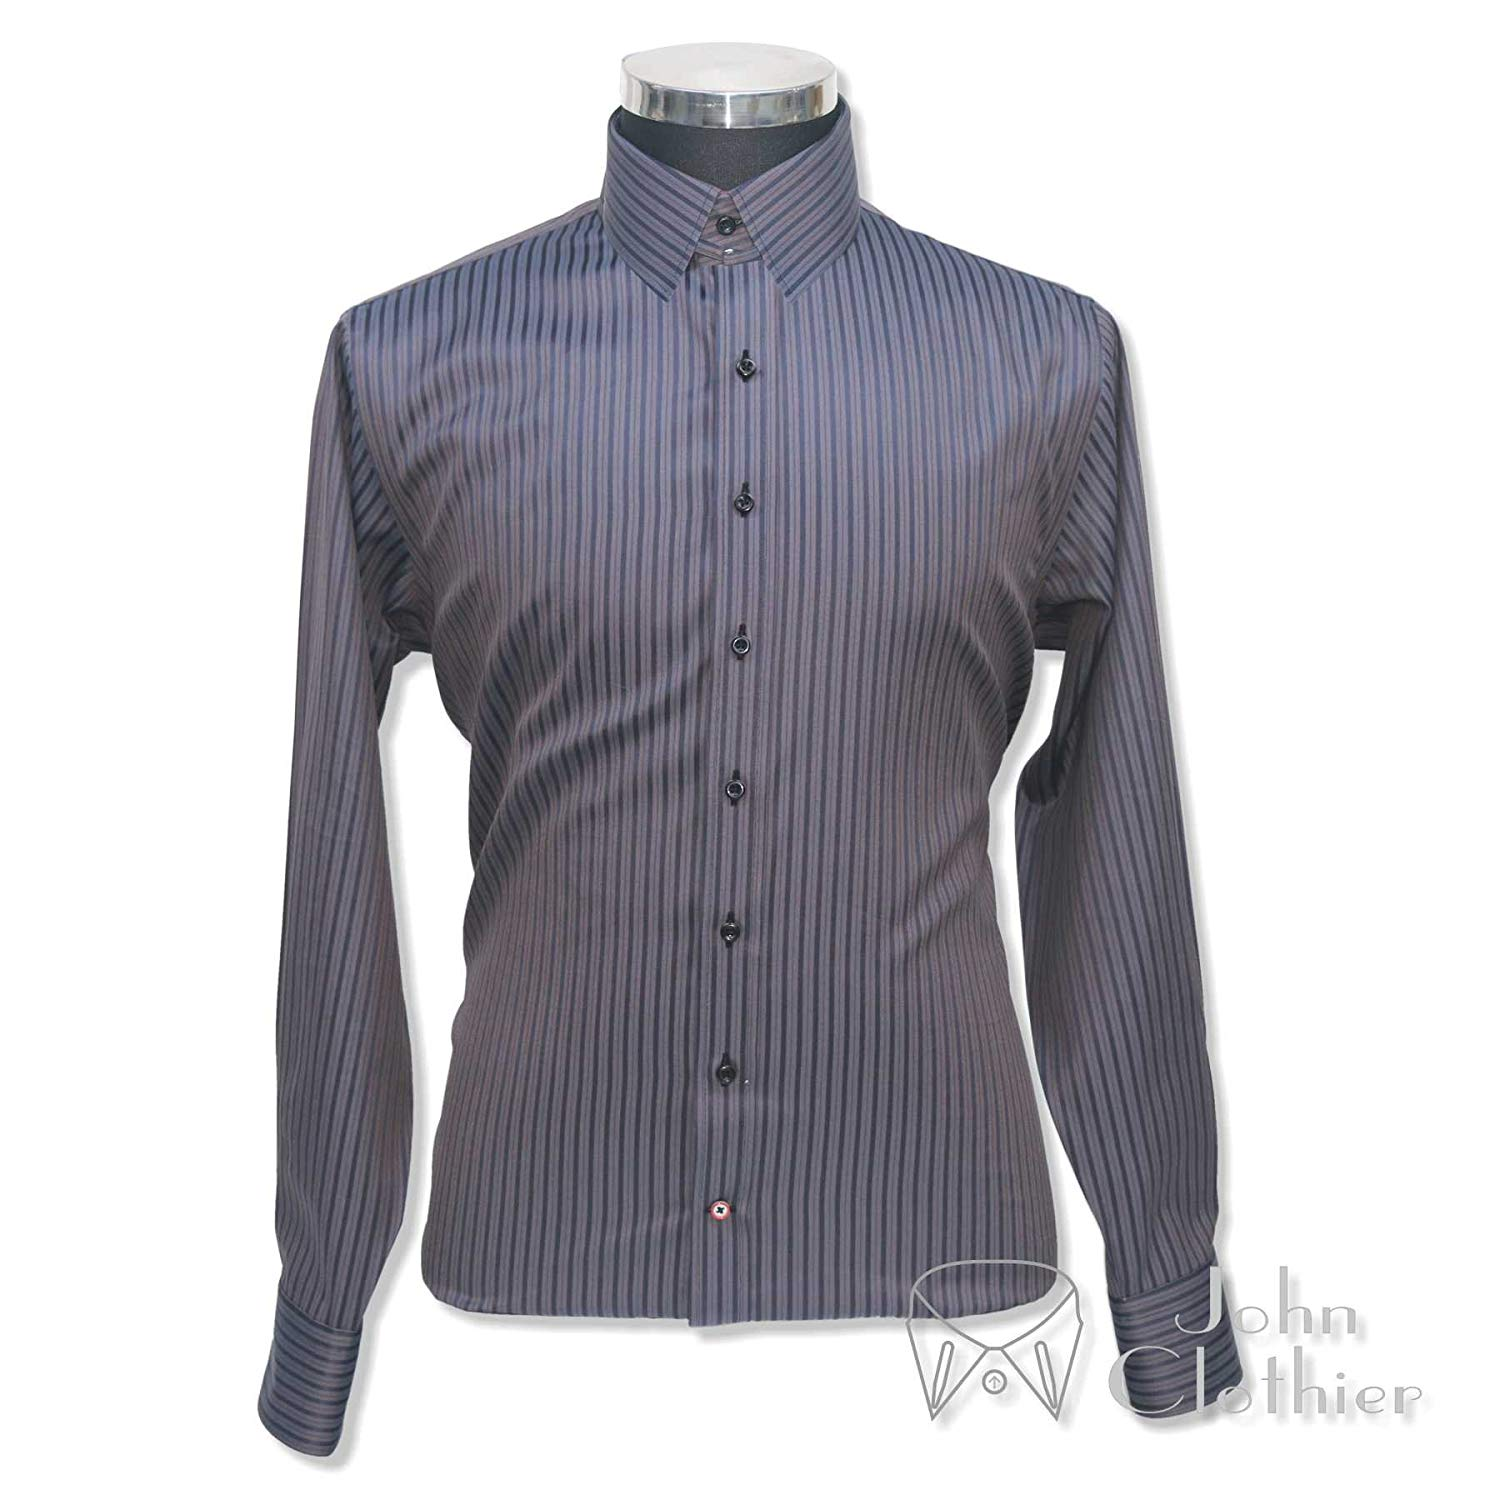 WhitePilotShirts Tab Collar Mens Bankers Shirt Navy Blue Gingham Checks 100/% Cotton Long Sleeves Single Cuff Gents 200-16